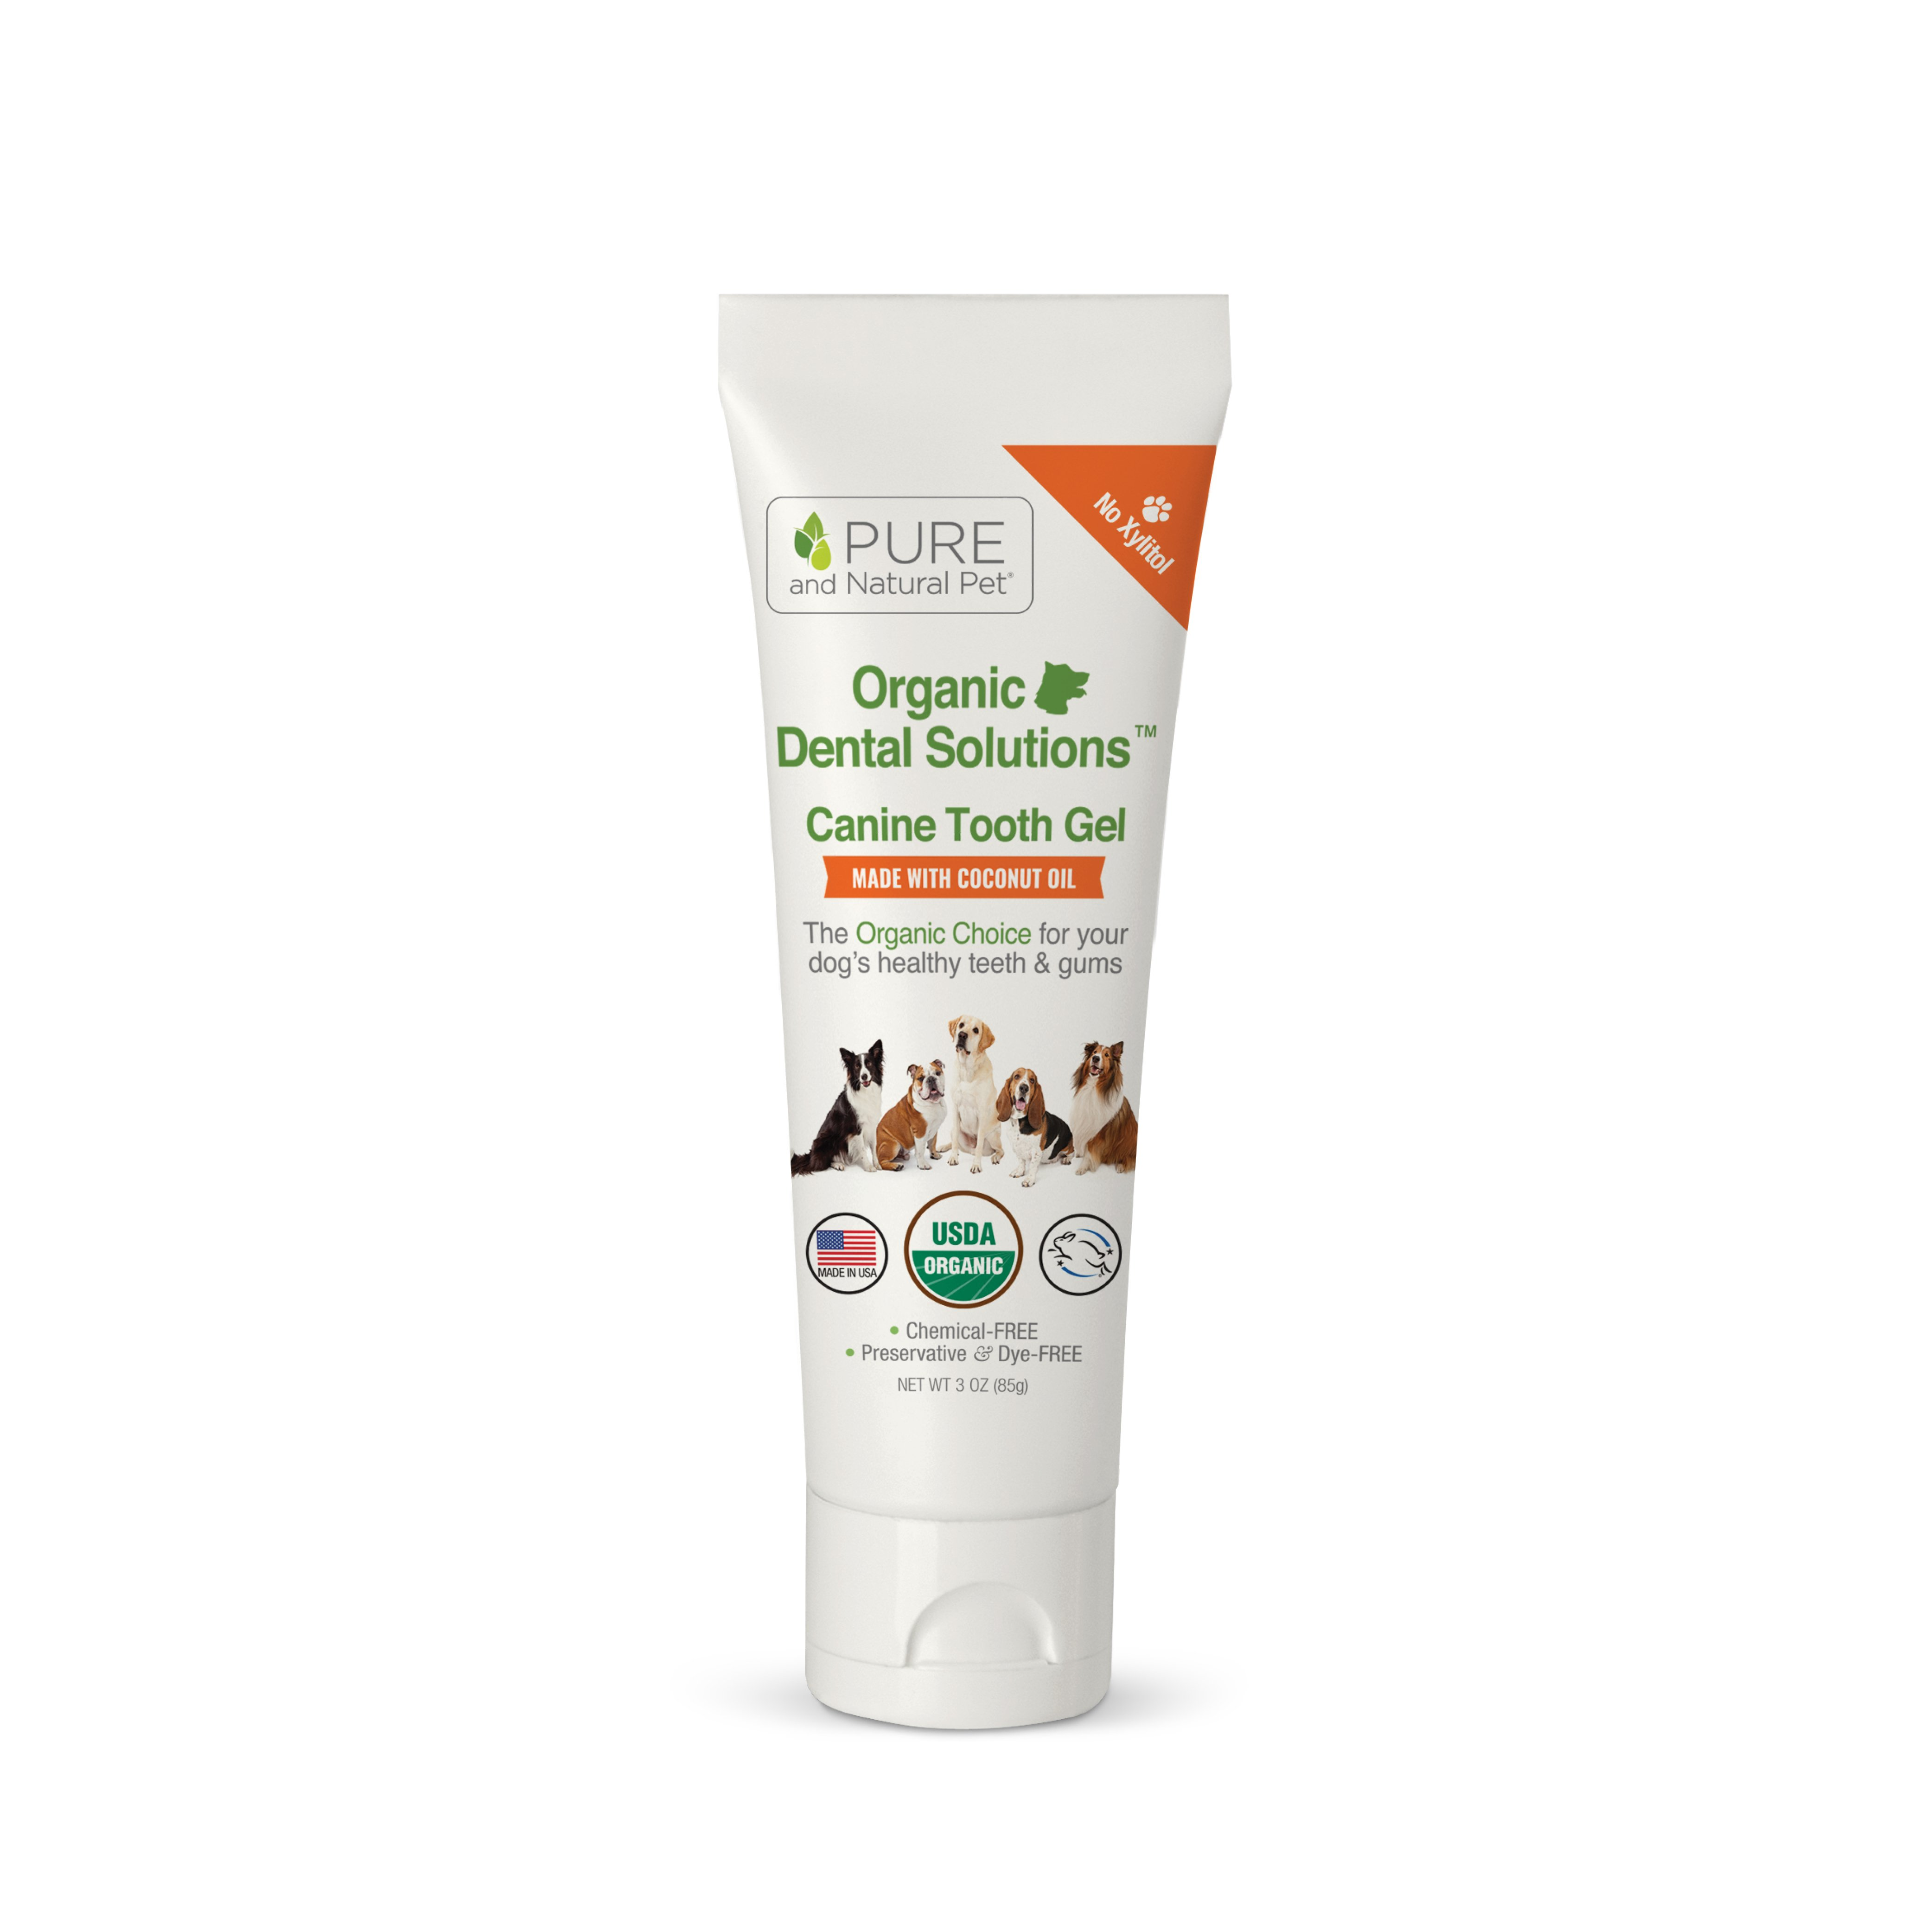 Pure and Natural Pet Canine Tooth Gel Image